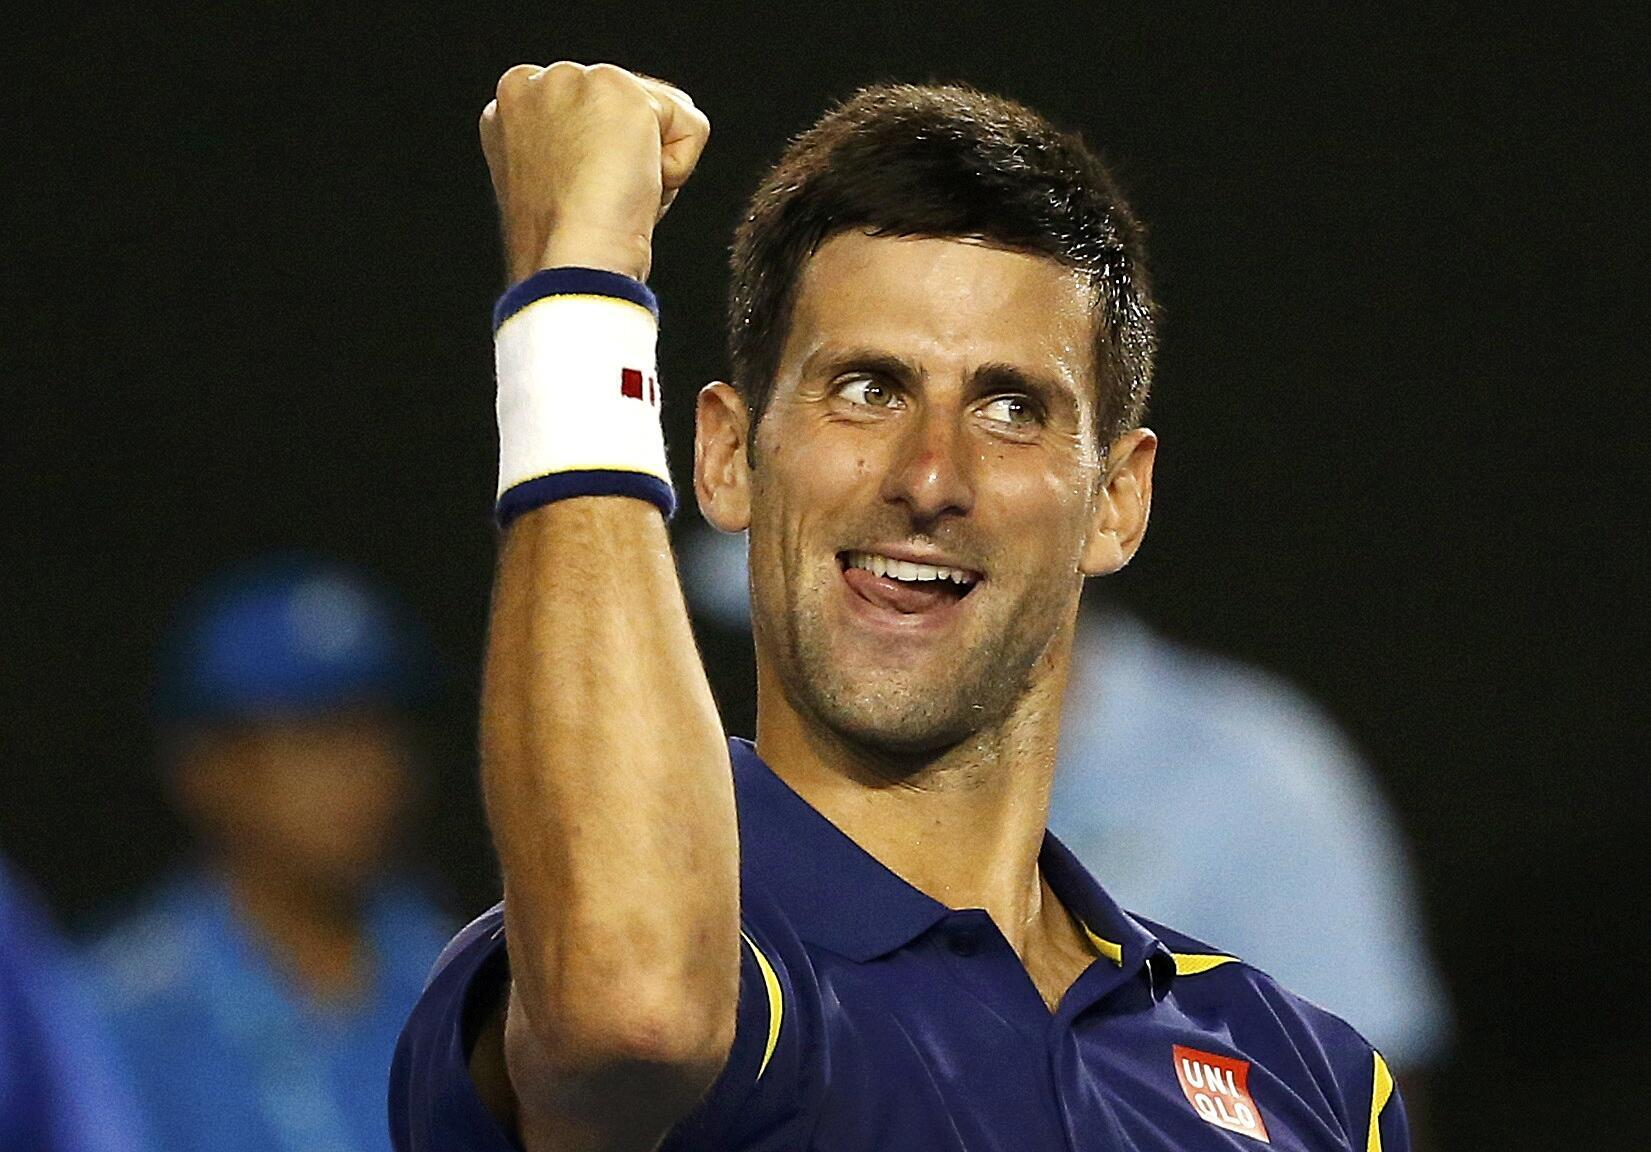 World number one Novak Djokovic will contest his sixth final at the Australian Open.